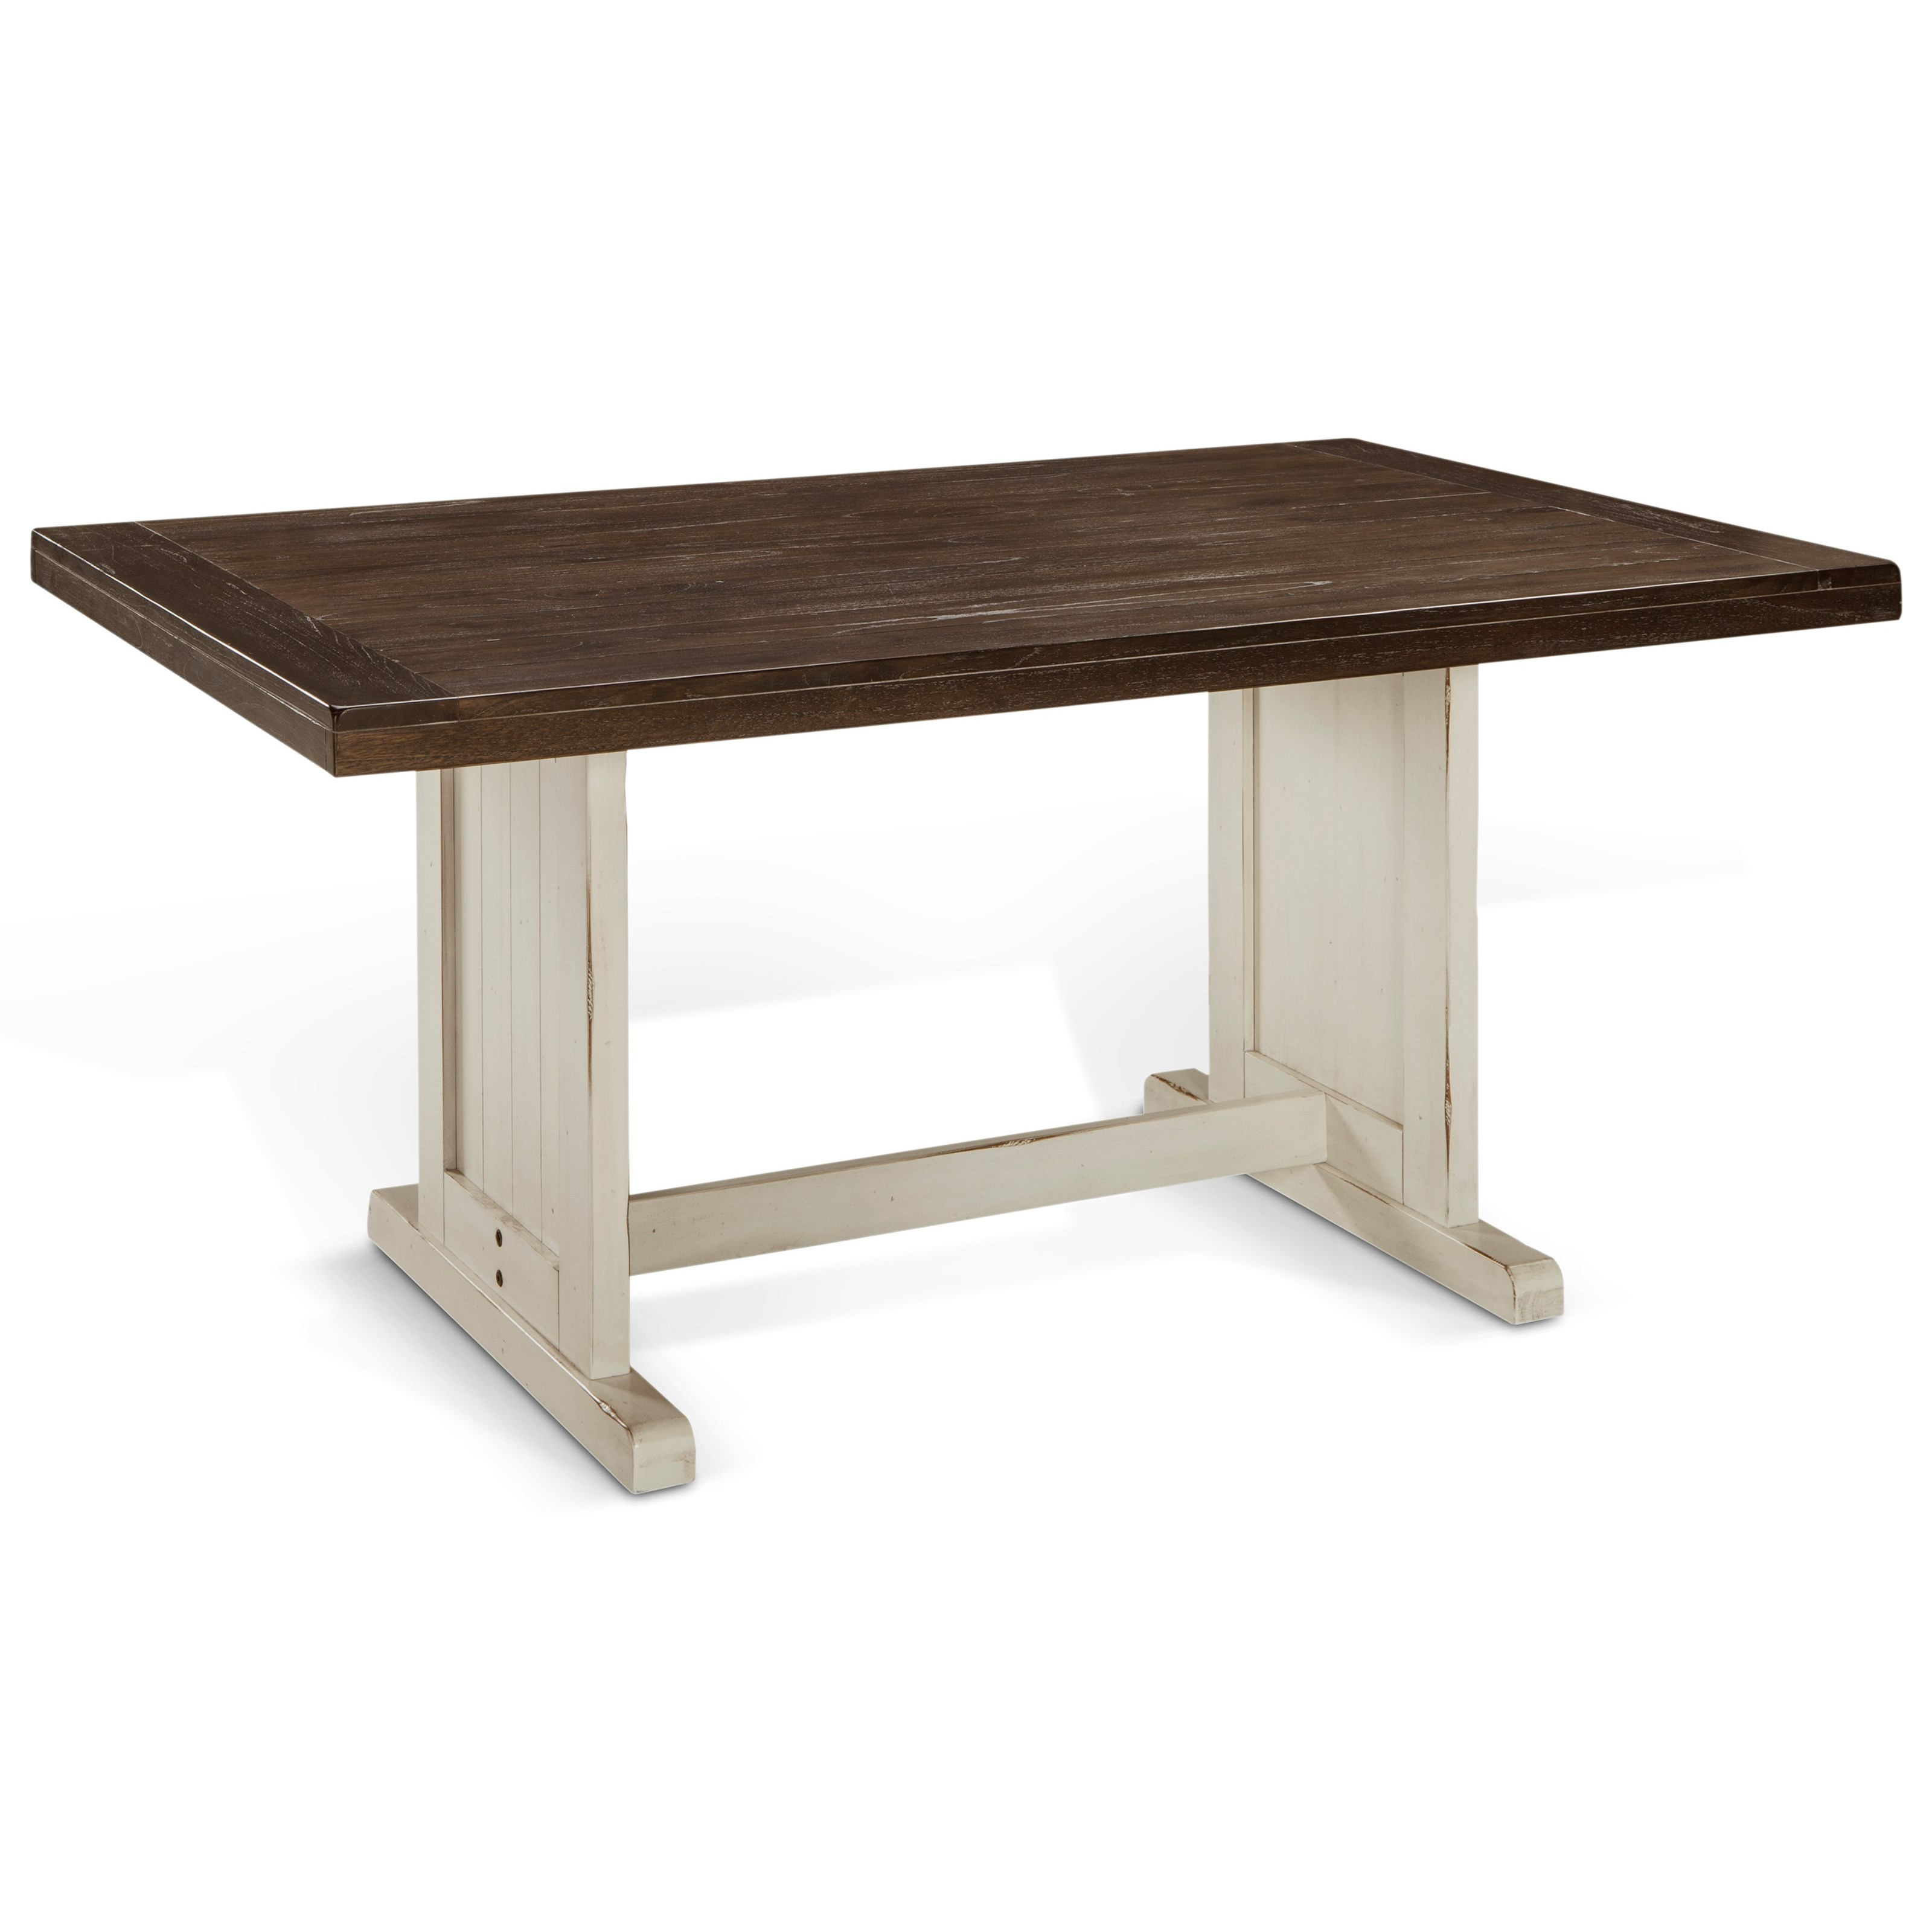 Carriage House Table at Bennett's Furniture and Mattresses